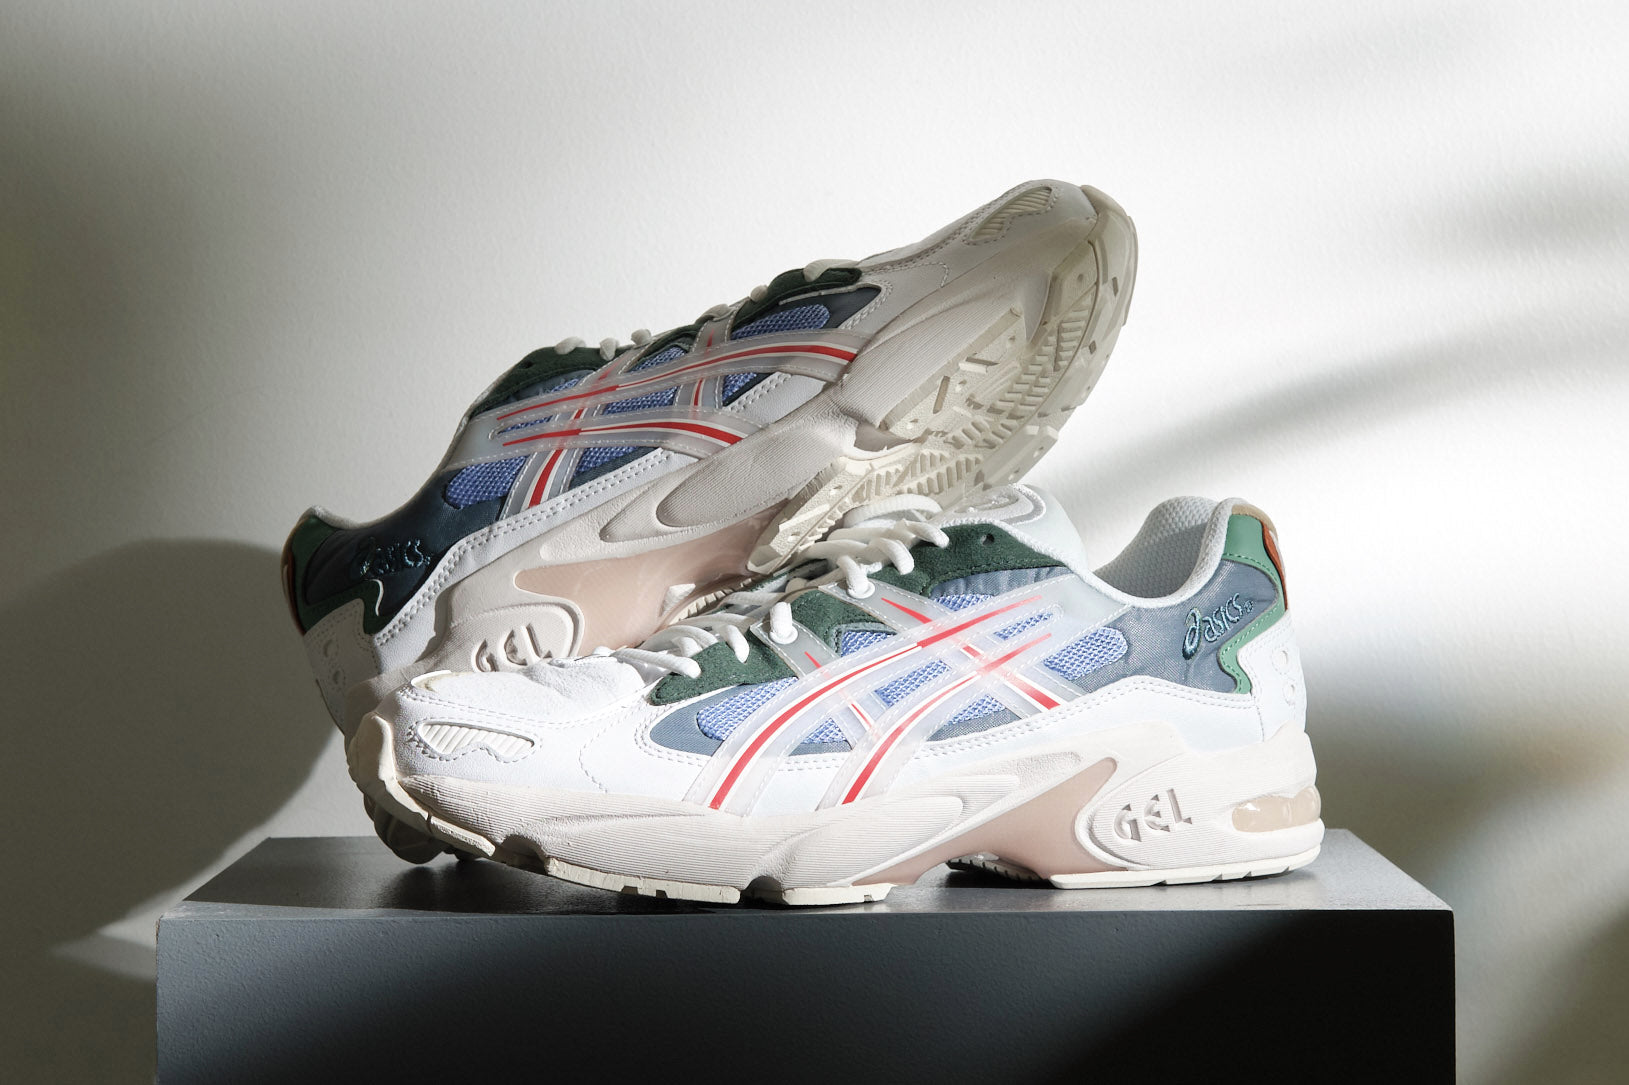 ASICS and HBX team up for a 90's take on the GEL-KAYANO 5 OG